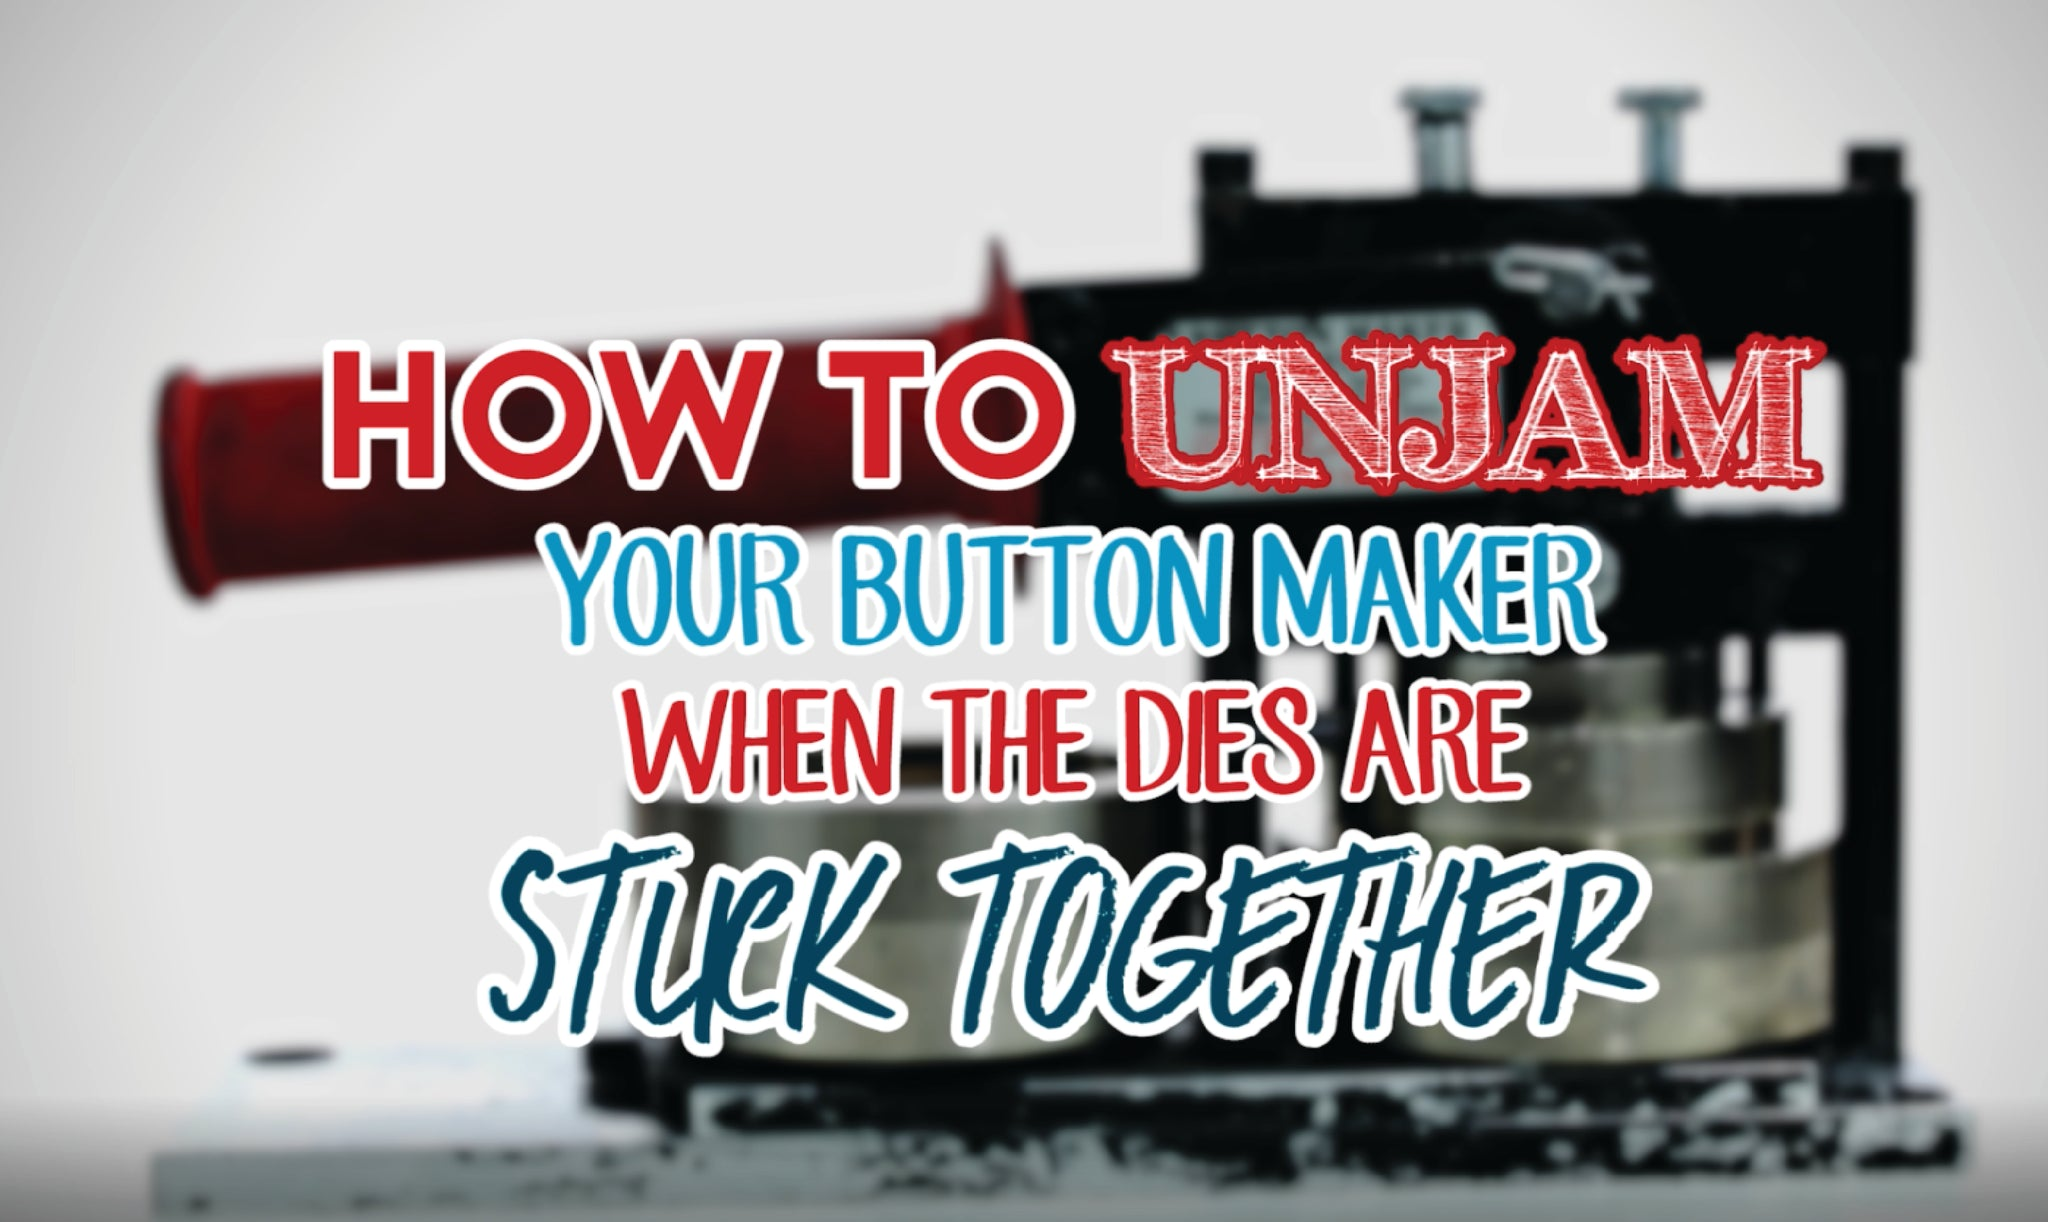 How to Unjam Your Button Maker, Button Guy Video, How-To Video, Button Making Parts & Supplies by People Power Press,